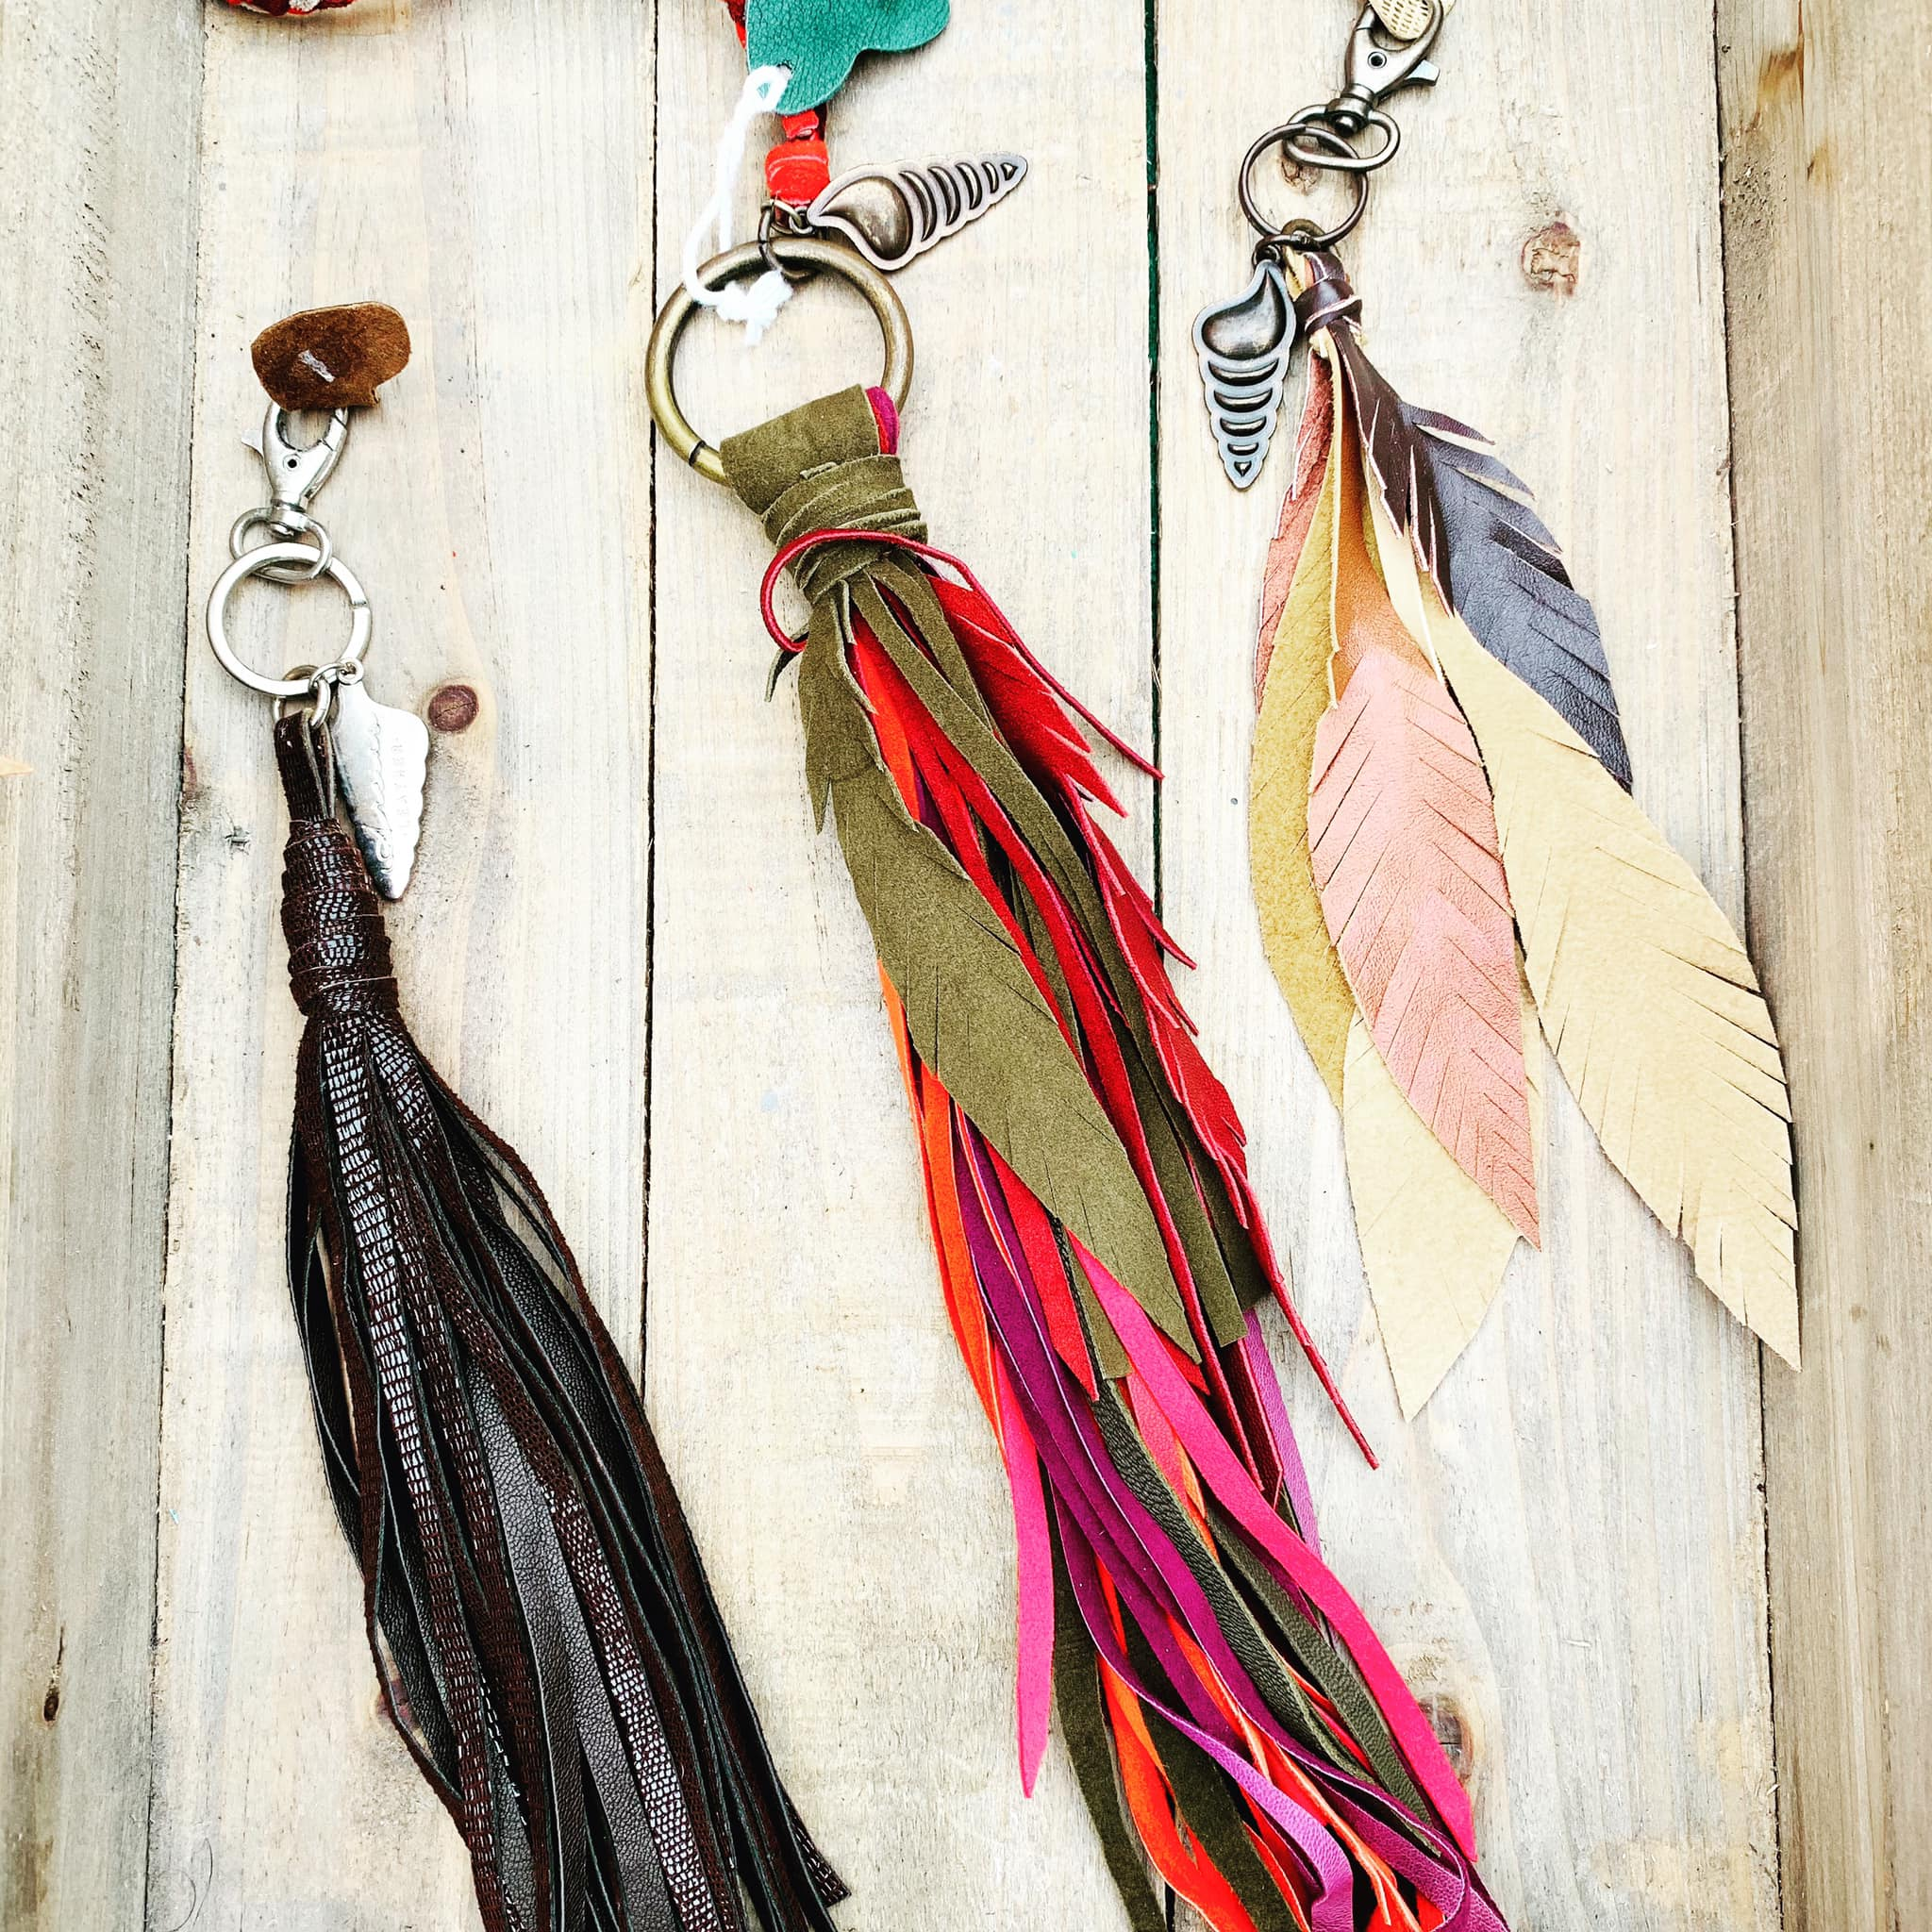 Artisan Made Leather Tassles